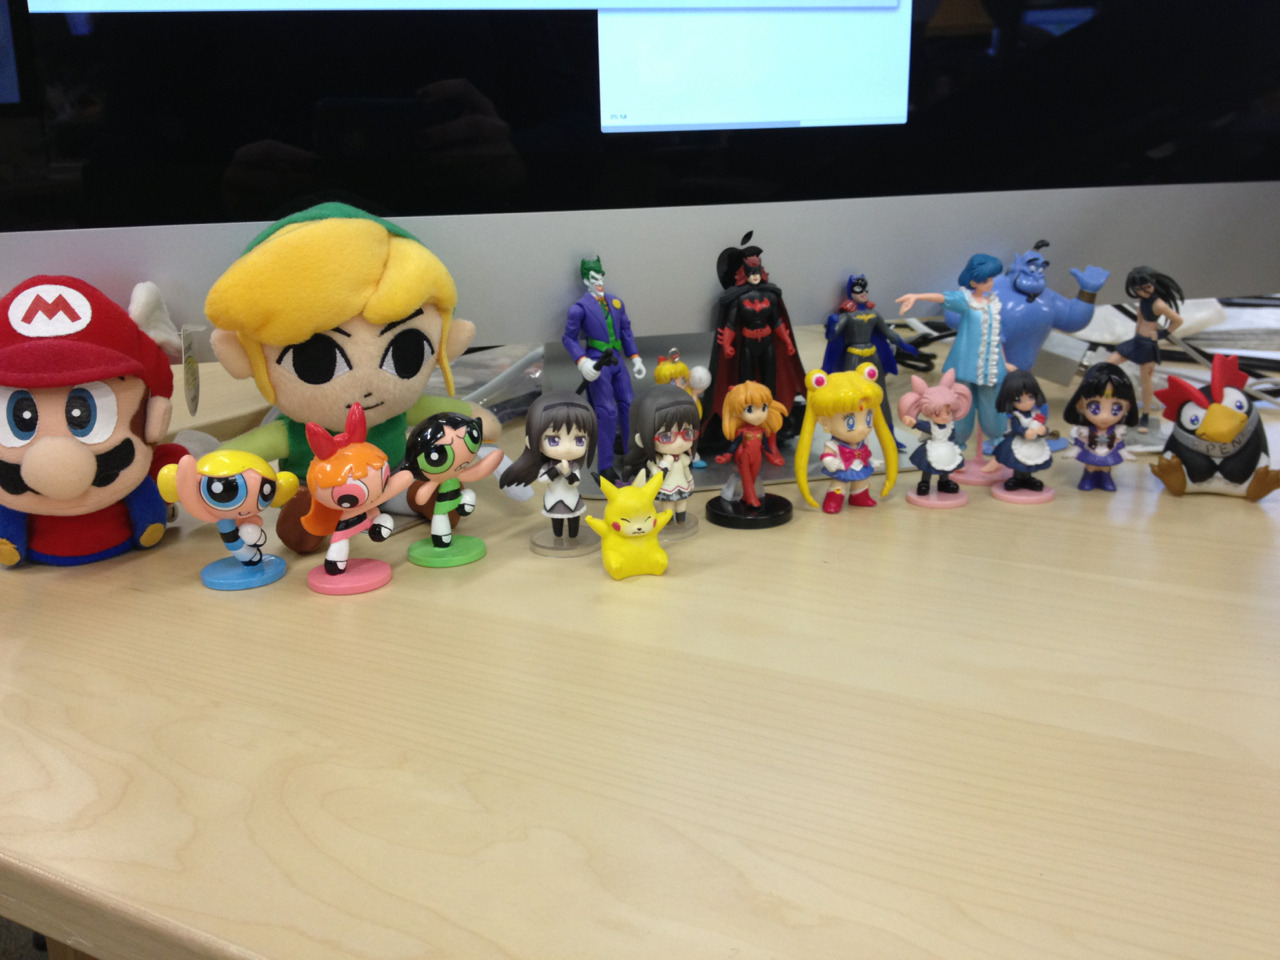 Desk toys make me happy!